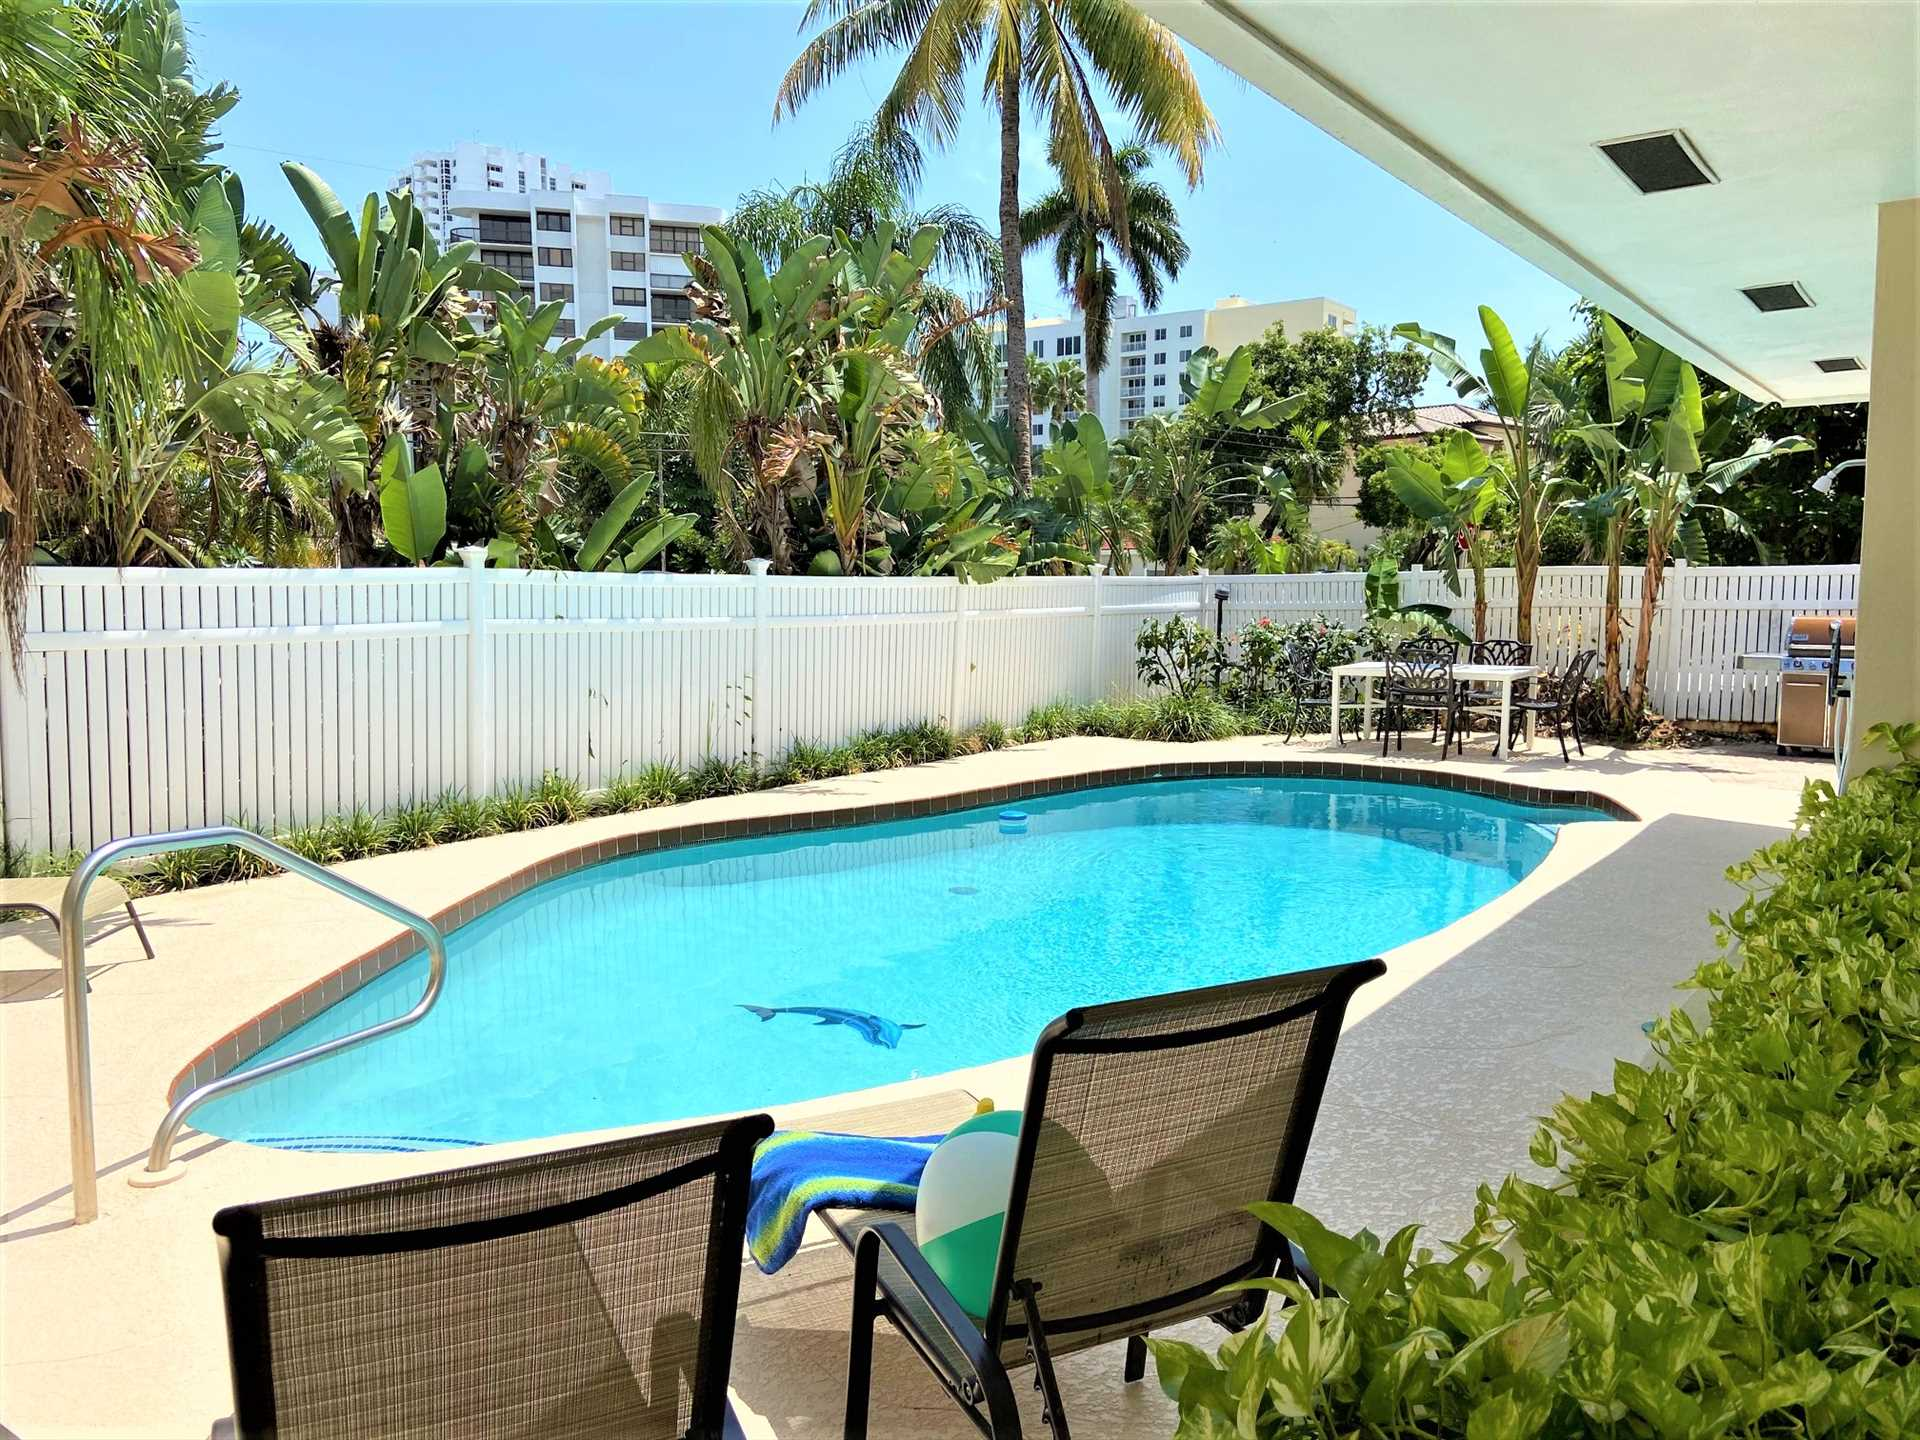 Pool deck is surrounded by a privacy fence.